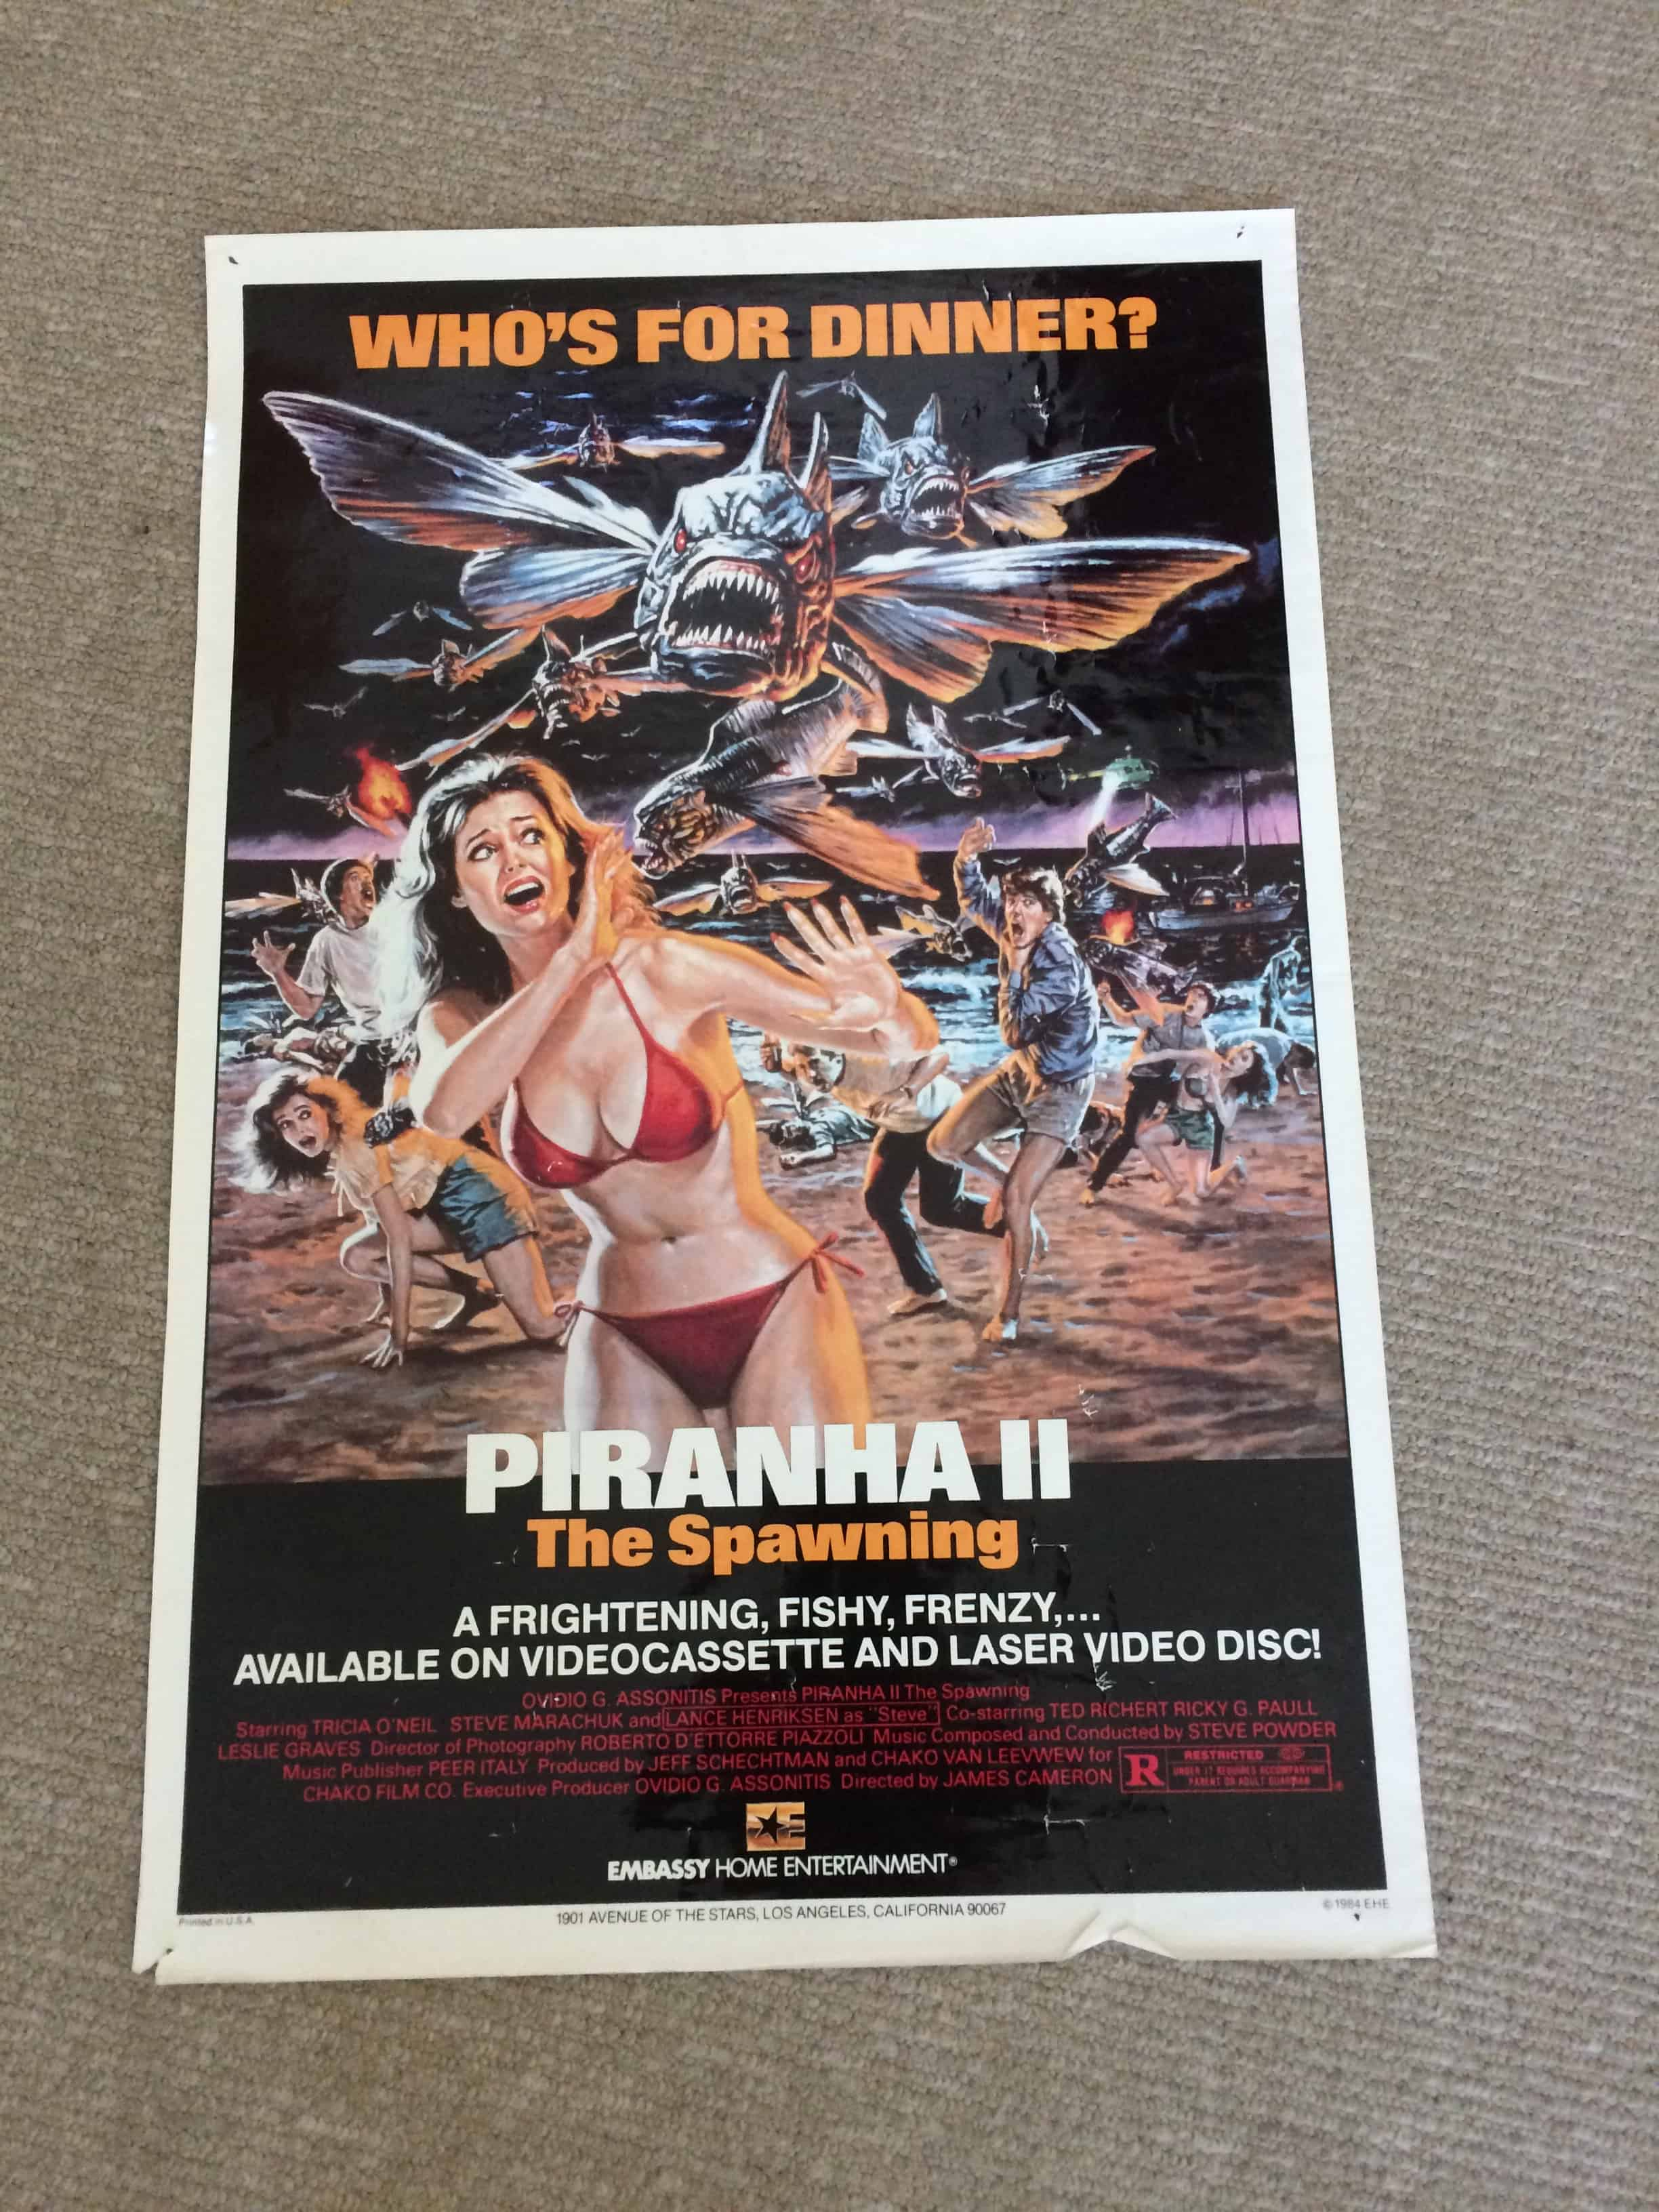 MOVIE POSTERS WE LOVE: PIRANHA II